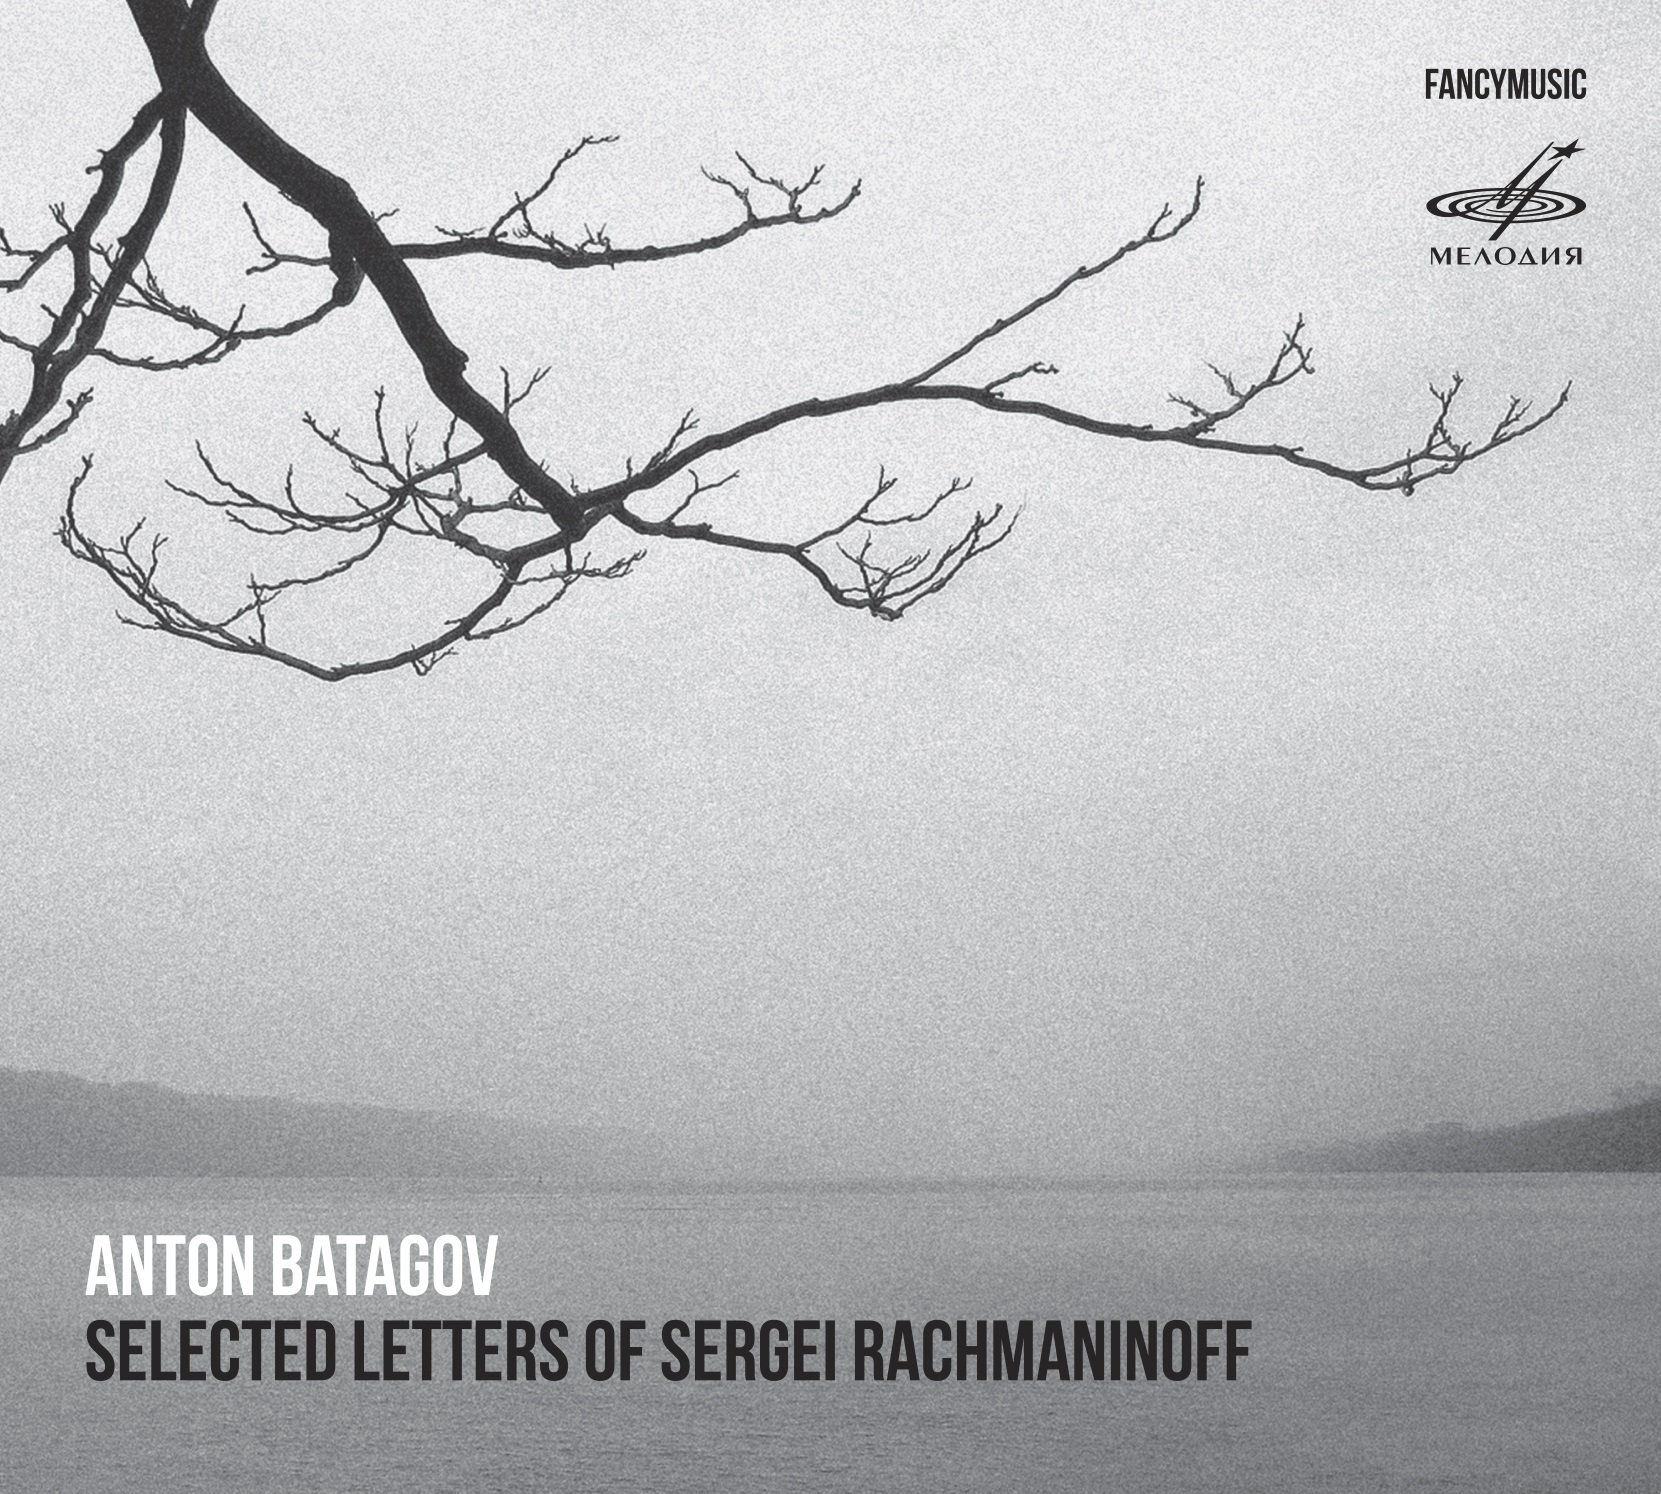 Anton Batagov. Selected Letters of Sergei Rachmaninoff (1 CD)